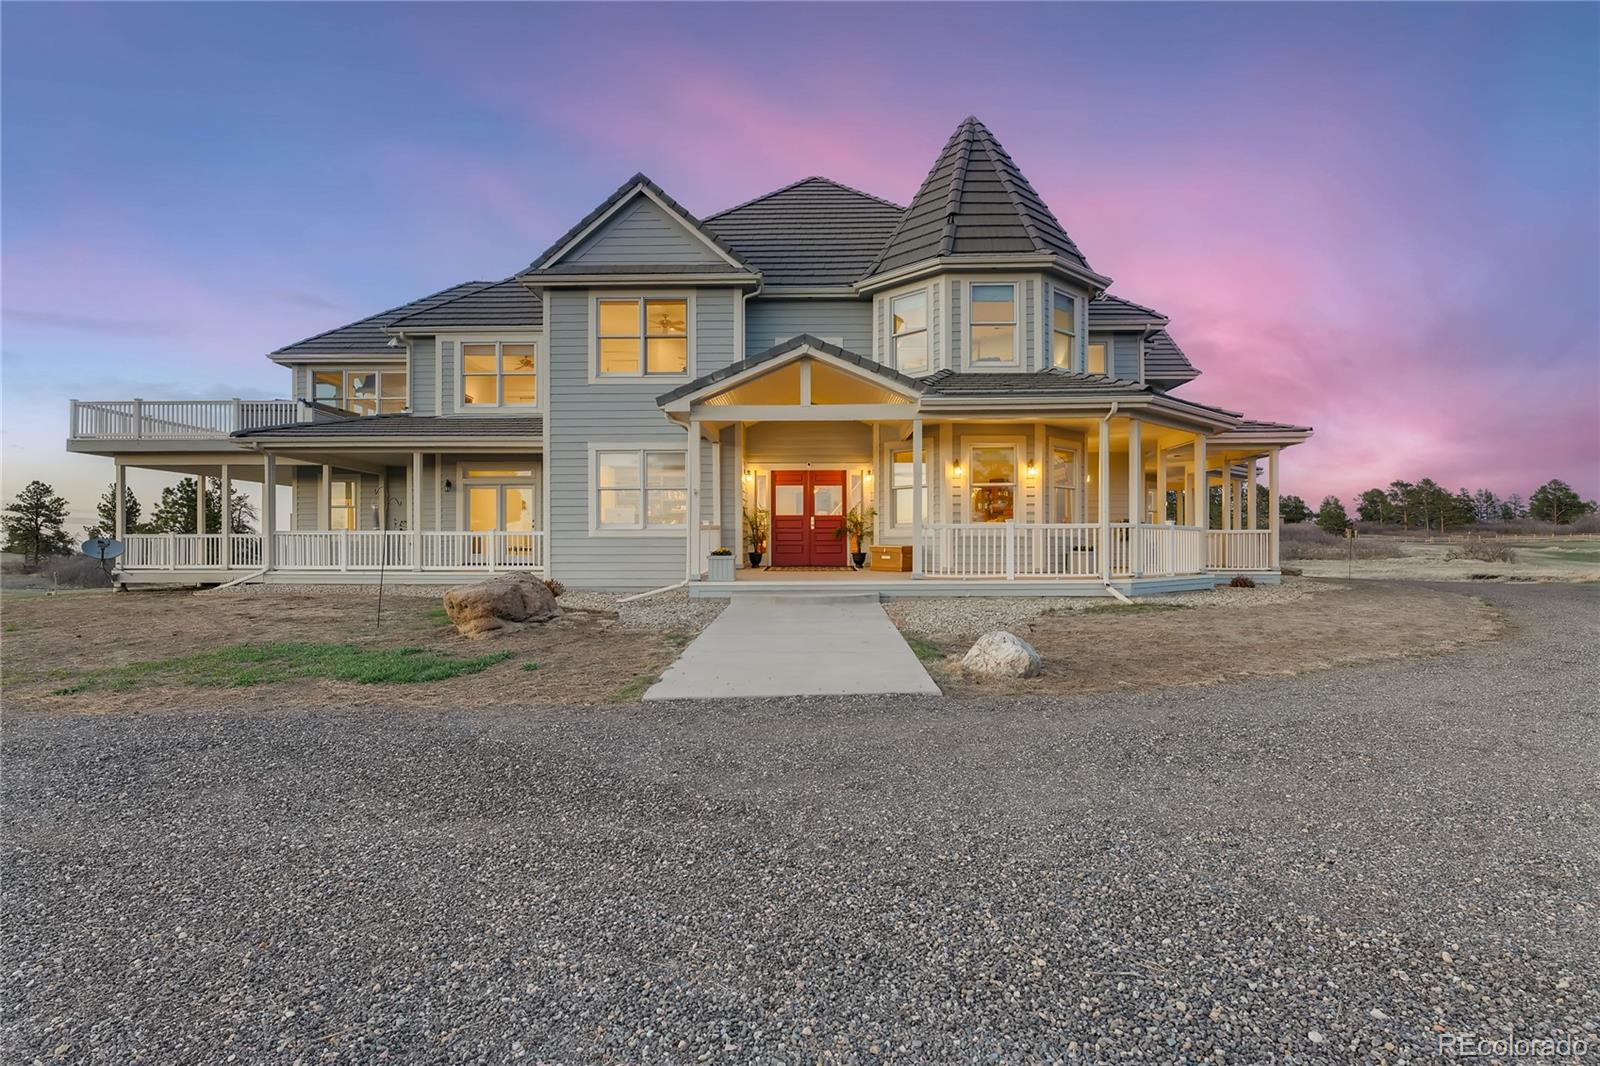 """PREMIER STORYBOOK VICTORIAN BEAUTY! THIS SPRAWLING FULLY FENCED & GATED COLORADO EQUESTRIAN ESTATE WILL TAKE YOUR BREATH AWAY! VIEWS AS FAR AS THE EYE CAN SEE! UNPARALLELED LOCATION & SETTING! ONE OF A KIND PRISTINE 35 ACRE LOT! EXTREME PRIVACY! **DIRECTLY BORDERING CASTLEWOOD CANYON STATEPARK & OPENSPACE-MILES OF HIKING TRAILS** GORGEOUS UNOBSTRUCTED PIKES PEAK & MOUNTAIN VIEWS *ROCK OUTCROPS *PRIVATE DUCKPOND *STUNNING GENTLY ROLLING GRASS HILLS & WILDFLOWERS*FULLY USABLE LOT-PERFECT FOR ENDLESS GALLOPING & ARENA! Constructed w/quality craftsmanship! Distinctive rustic elegance*Designer touches*Handsome woodwork*Soaring vaults*Gleaming knottypine woodfloors*Custom Upgraded lighting & paint*2 familyrooms w/fireplaces*Elegant formal dining-IMAGINE HOSTING HOLIDAYS! Executive office w/french doors &built-ins* Chef's gourmet kitchen w/granite, upgraded cabs, HIGH-END stainless appliances-OPEN CONCEPT directly to cheery breakfast nook and family room* Large master w/fireplace & en-suite 5p bath. Endless room options- family rooms/playroom/gyms/offices. Large bedrooms w/bath access. HUGE WINDOWS ENCASE PICTURESQUE NATURAL VIEWS LIKE ARTWORK! Fin basement*3car att garage. Horses treated to fenced grass pastures, spending days relaxing on graceful meadows. Charming (easily converted) Large barn w/water*electricity & fenced runs- currently set up as 2stall w/run & 2tack rooms & HUGE HEATED STUDIO/OFFICE* Large loft*Loafing shed. Framed Pikes Peak view out barn door. Community bridle path. SOAK IN HOTTUB-OVERLOOK WILDLIFE ROAMING, DUCKS IN POND, ORANGE/PINK SUNSETS & ROMANTIC STAR-LIT NIGHTS! Jog your private 1mile perimeter track. Separate fenced dog yard. Wrap-around deck-perfect for entertaining! Sip morning coffee in serenity of nature & listen to symphony of birds. LUXURY """"EAST RIM RANCH"""" GATED COMMUNITY! COUNTRY OASIS-VERY close to shopping, restaurants, Denver, DIA.BENEFITS=AESTHETICS, COMFORT, LIFESTYLE, PRESTIGE & AMENITIES! VIDEO LINK https://youtu.be/nTbhoMuzVFo"""